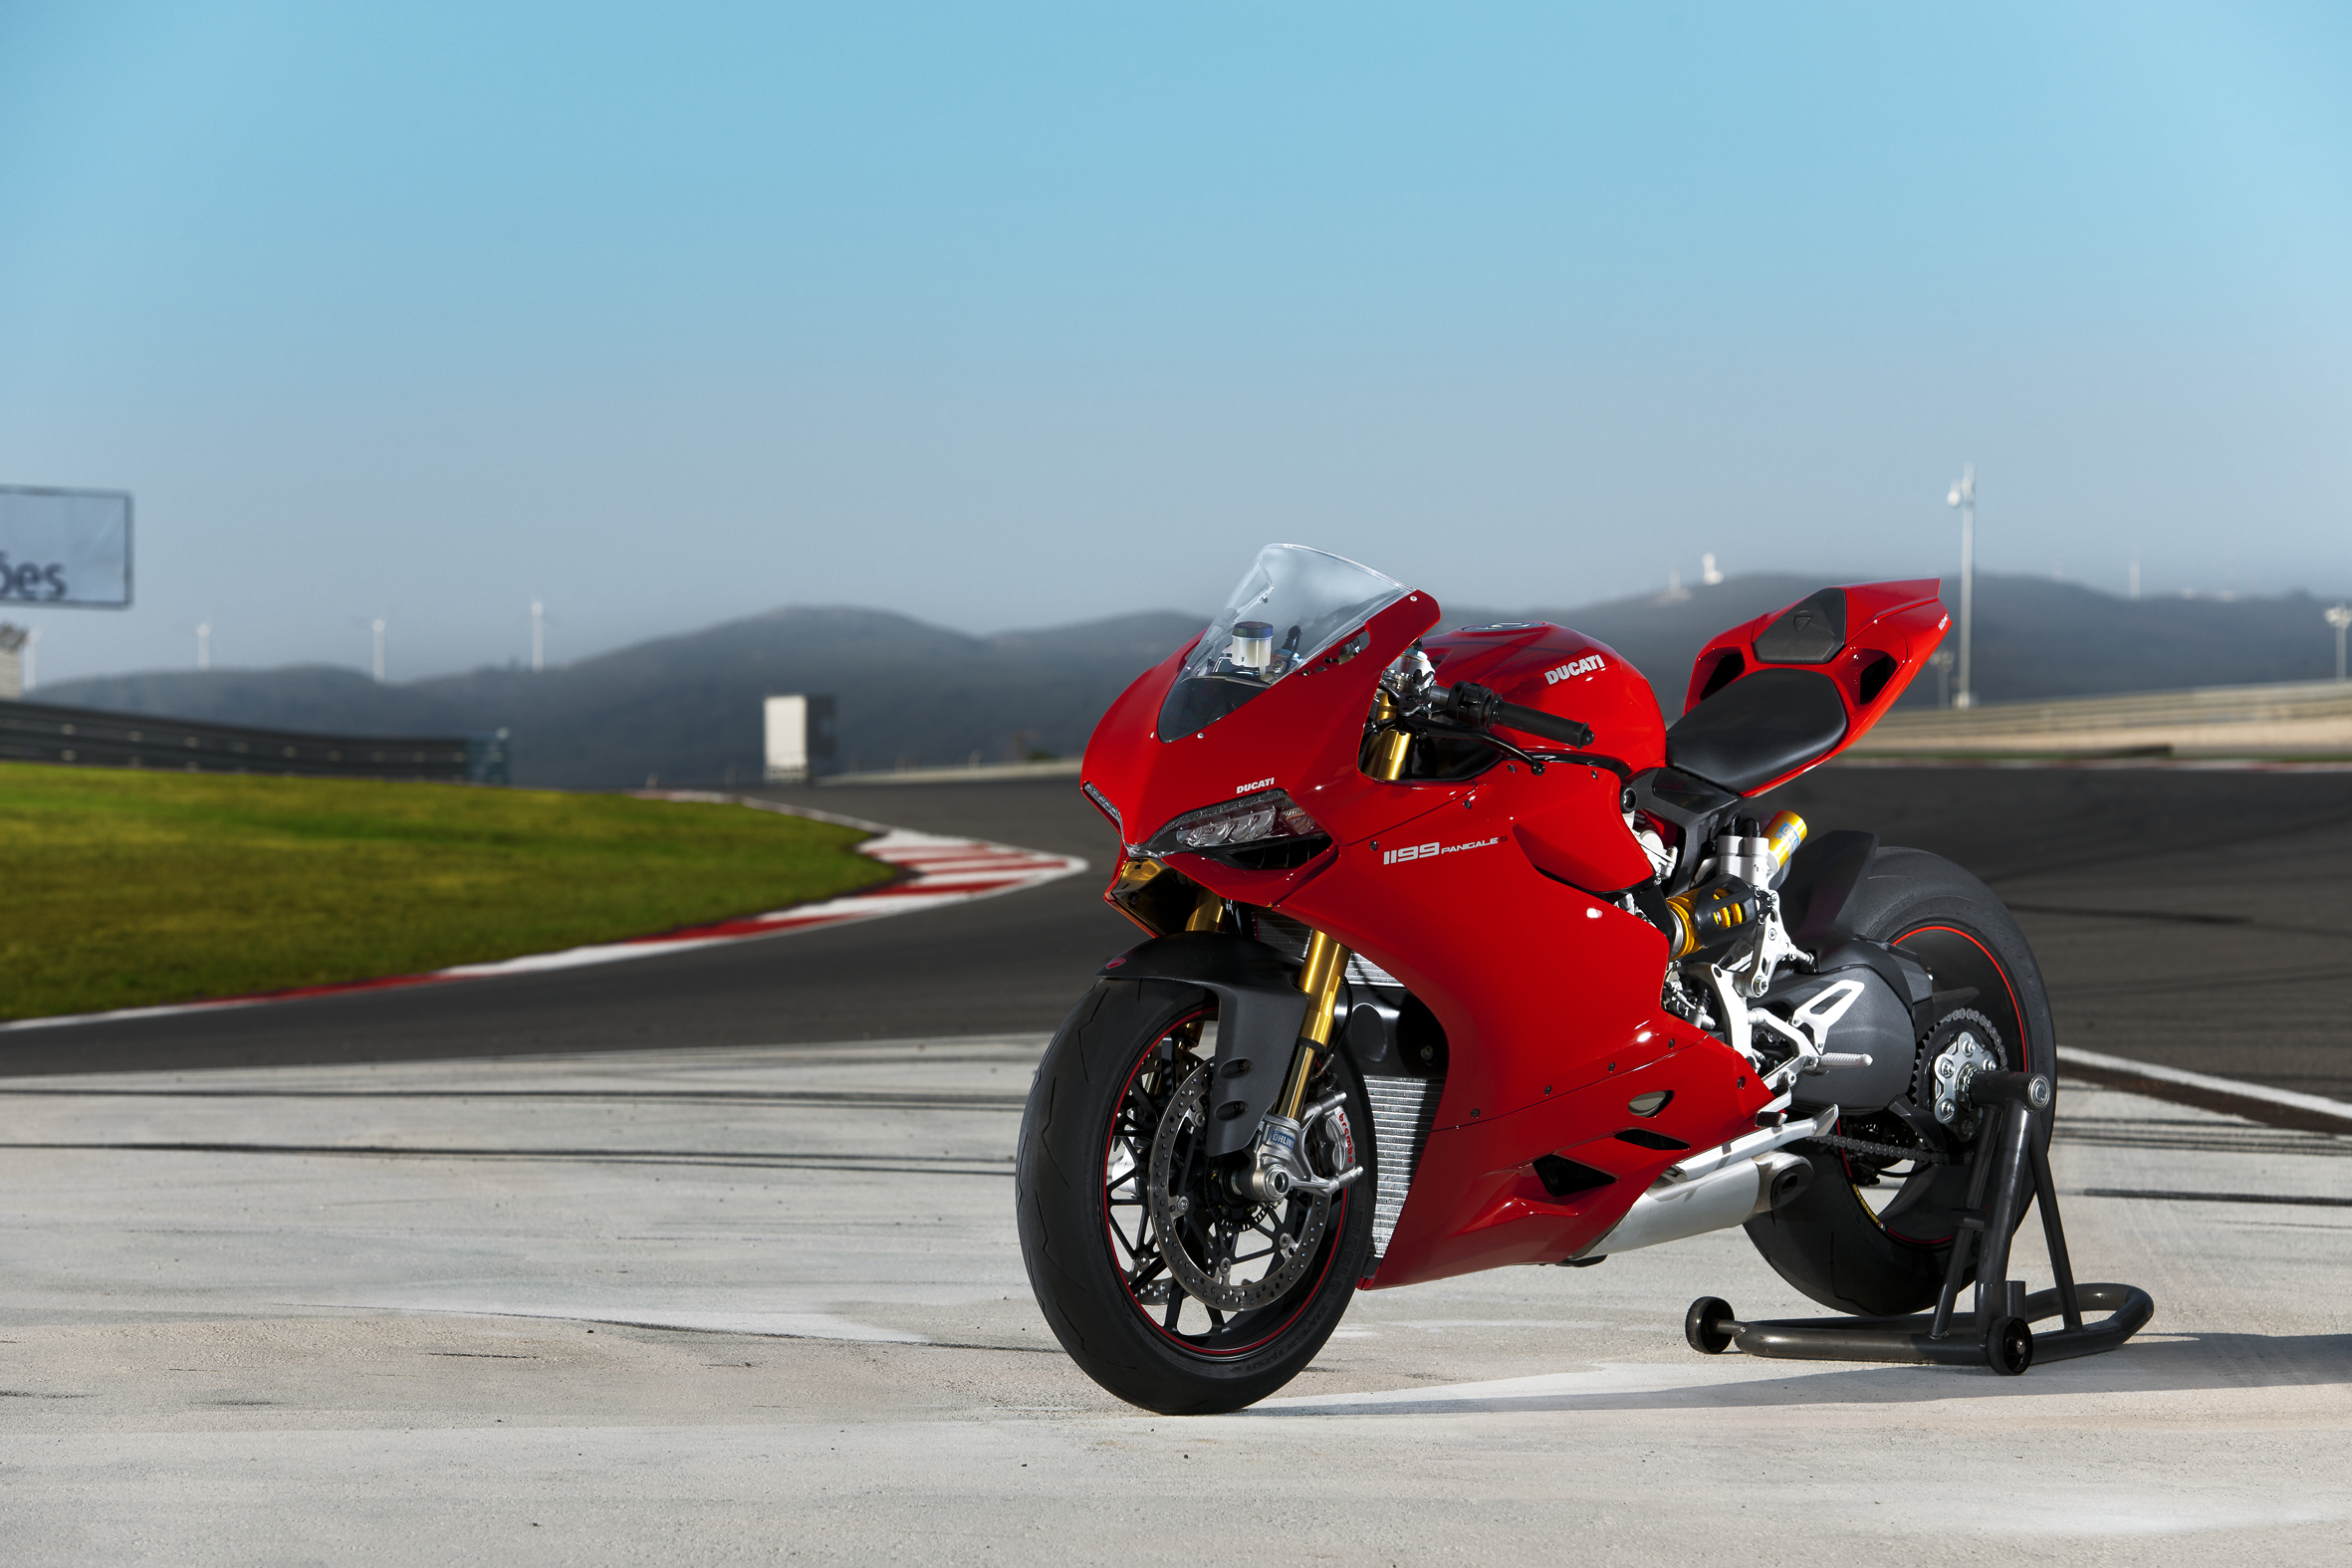 Ducati 1199 Panigale S O Review For Sale Price Guide The Bike Market